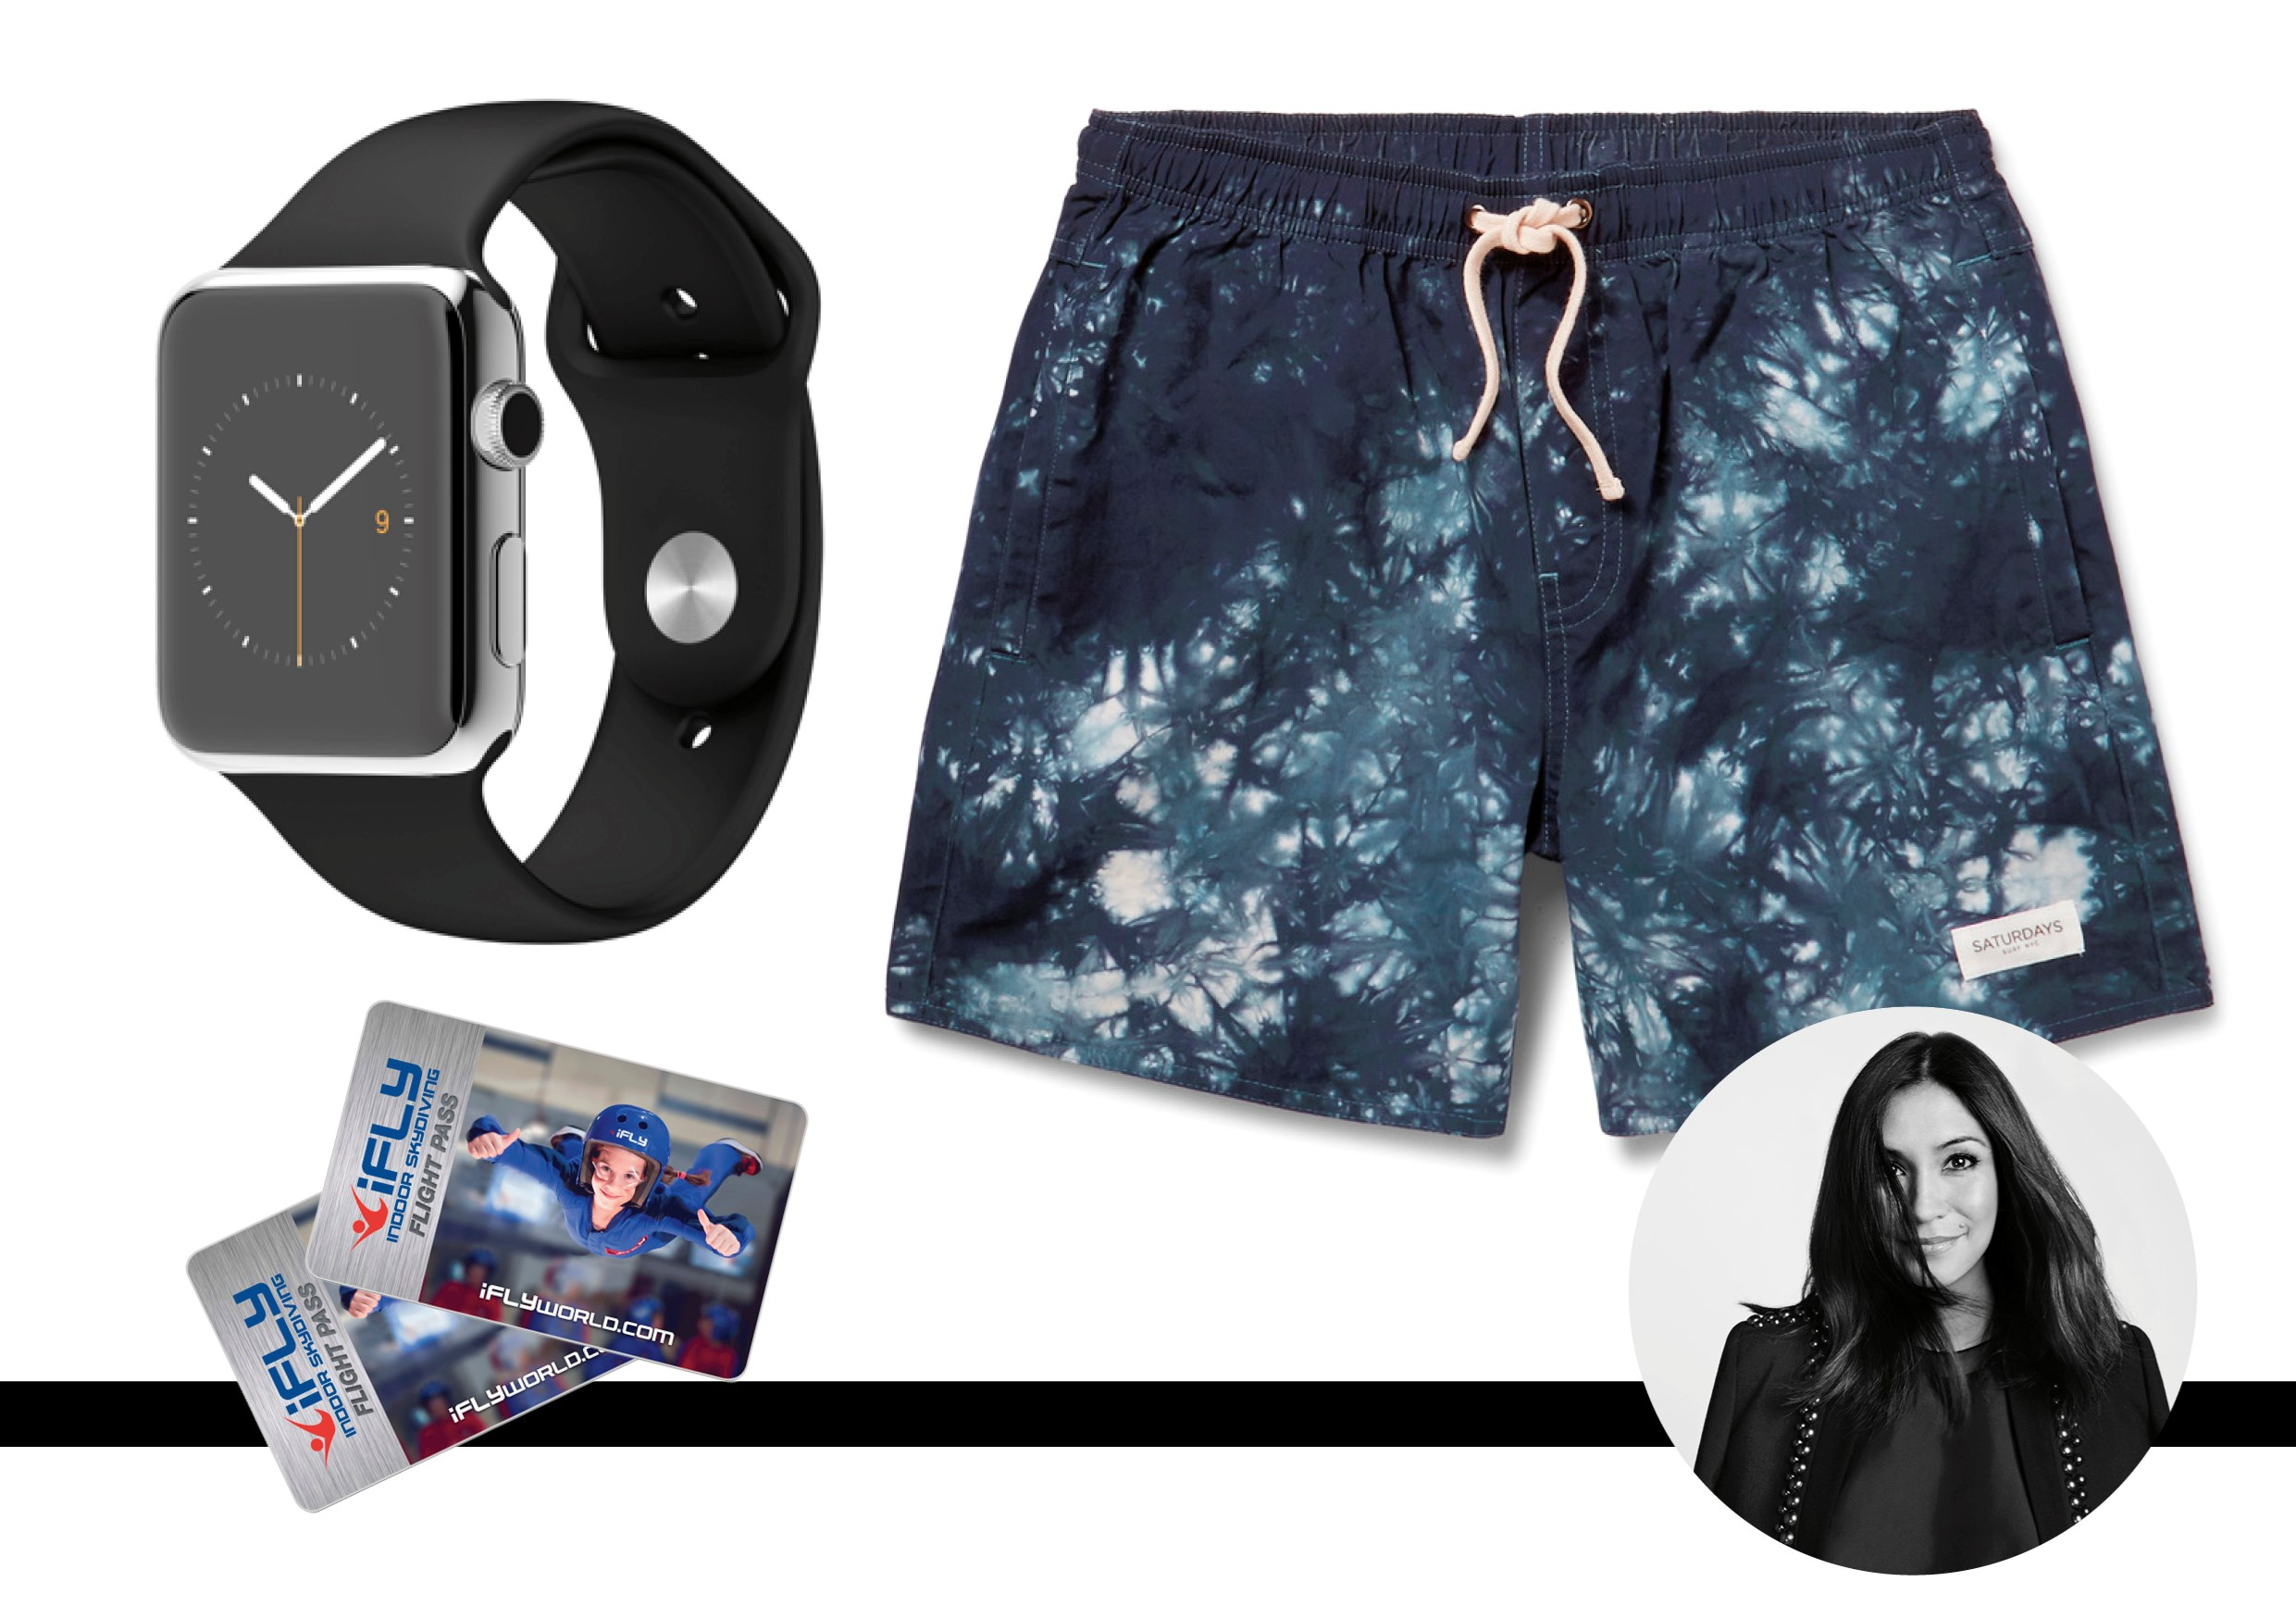 """My husband is notoriously difficult to buy for so I prefer to get him experiences – this year we're going indoor skydiving as a family (because the family that pretends to jump out planes together, stays together). My other go-tos are anything from Saturdays NYC, like these boardshorts, and of course, you can't go wrong with an Apple Watch. <br><br>iFLY Indoor Skydiving session, from $109,  <a href=""""http://www.downunder.iflyworld.com"""">iFLY</a> <br><br>Boardshorts, $108, Saturdays Surf NYC,  <a href=""""http://www.mrporter.com"""">Mr Porter</a> <br><br>Watch, $879, Apple,  <a href=""""http://www.apple.com"""">Apple</a>"""